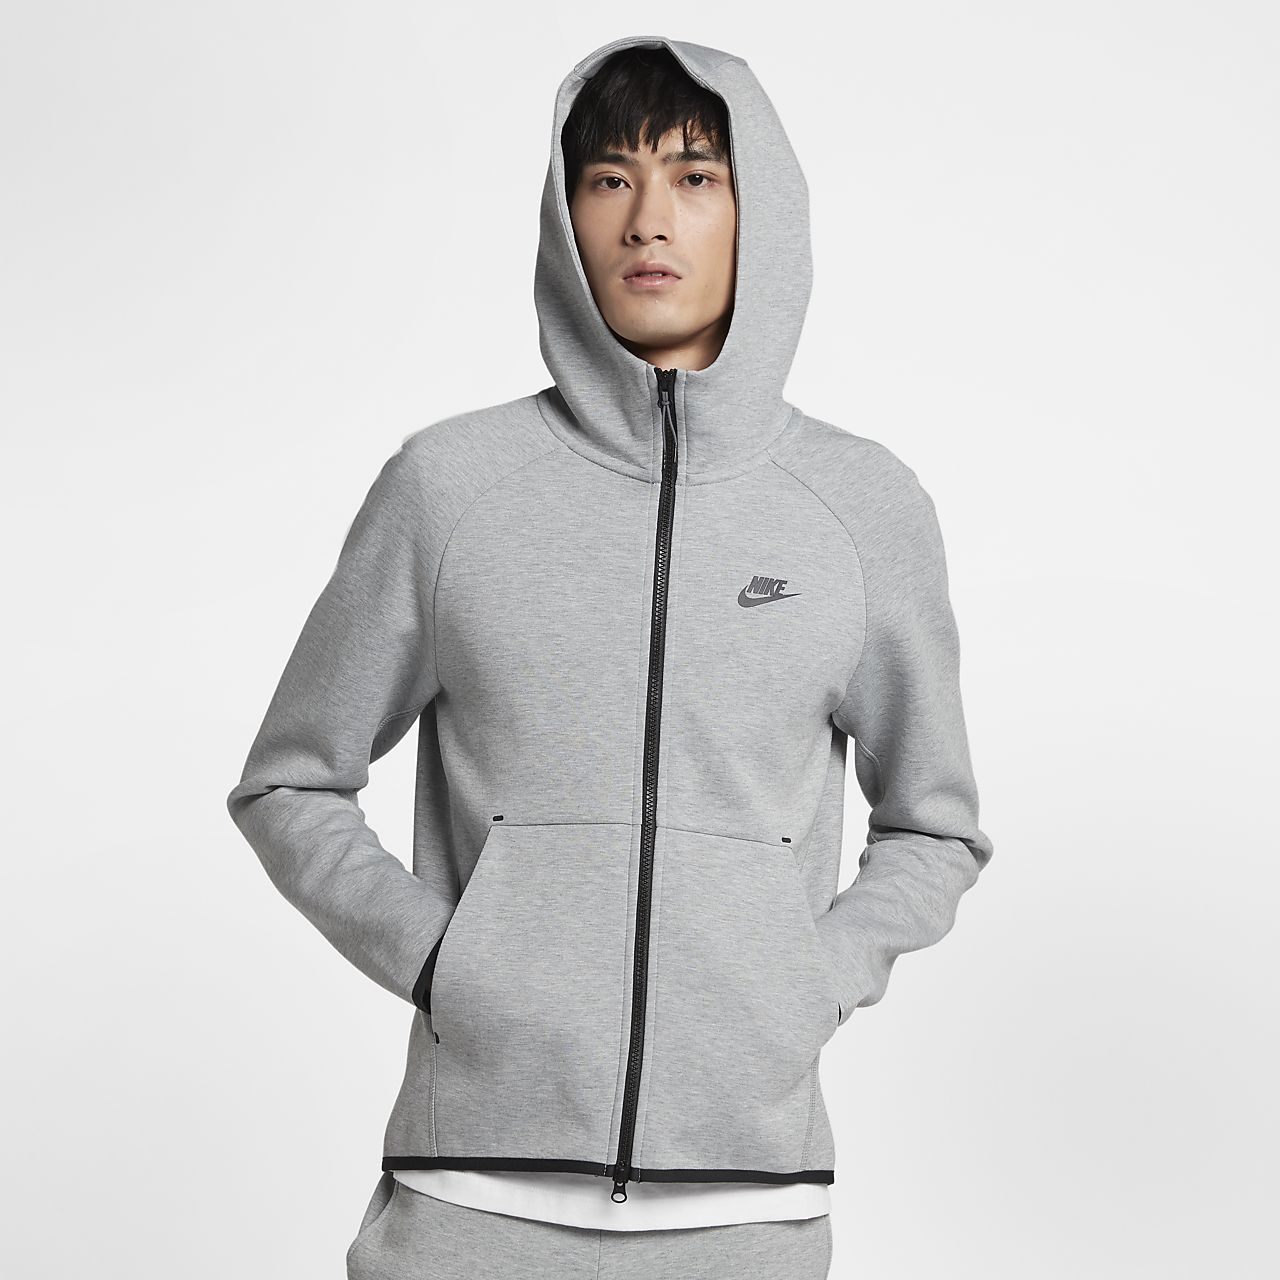 f58d64ff447 Nike Sportswear Tech Fleece Men s Full-Zip Hoodie. Nike.com SE